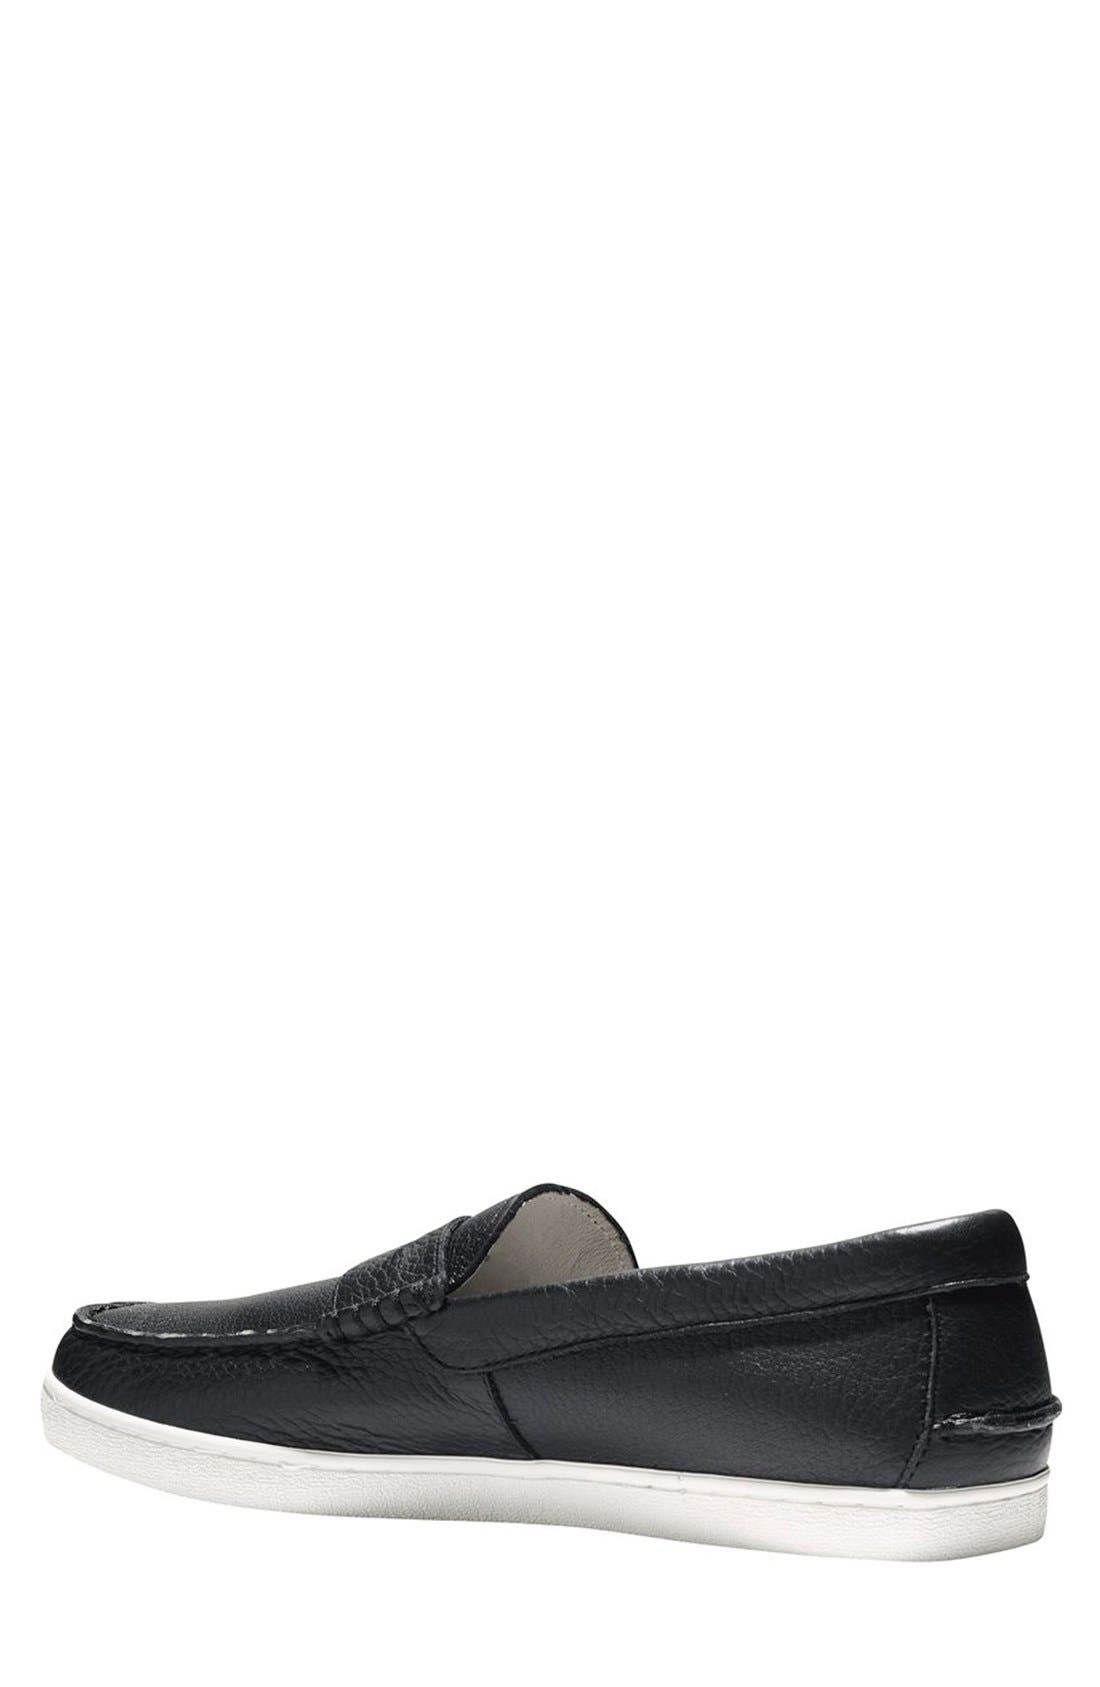 COLE HAAN, 'Pinch' Penny Loafer, Alternate thumbnail 7, color, BLACK LEATHER/ WHITE